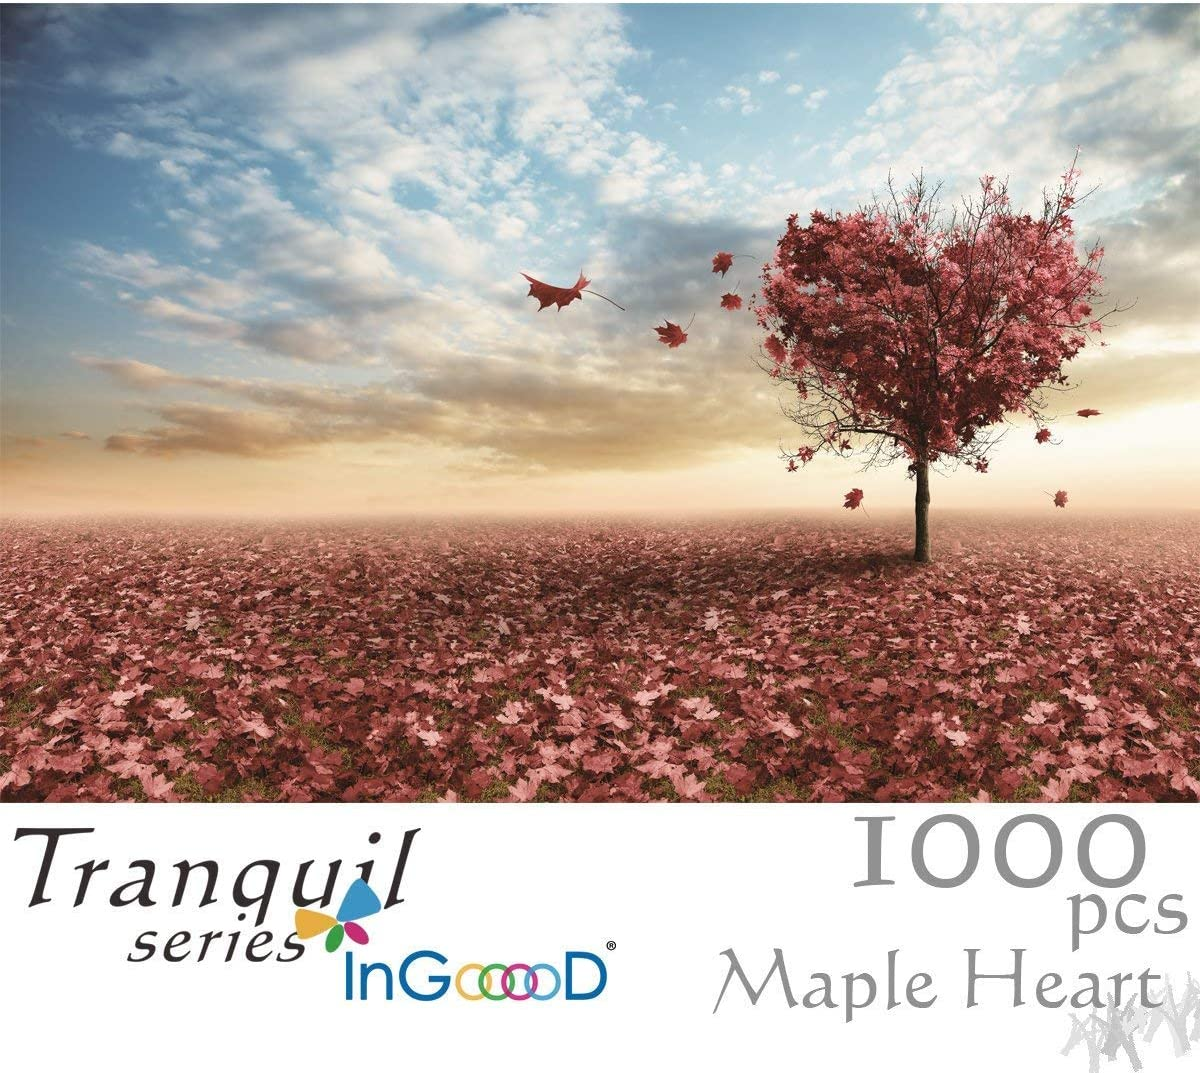 Ingooood Jigsaw Puzzles 1000 Pieces- Tranquil Series Maple Leaves Heart- for Adult